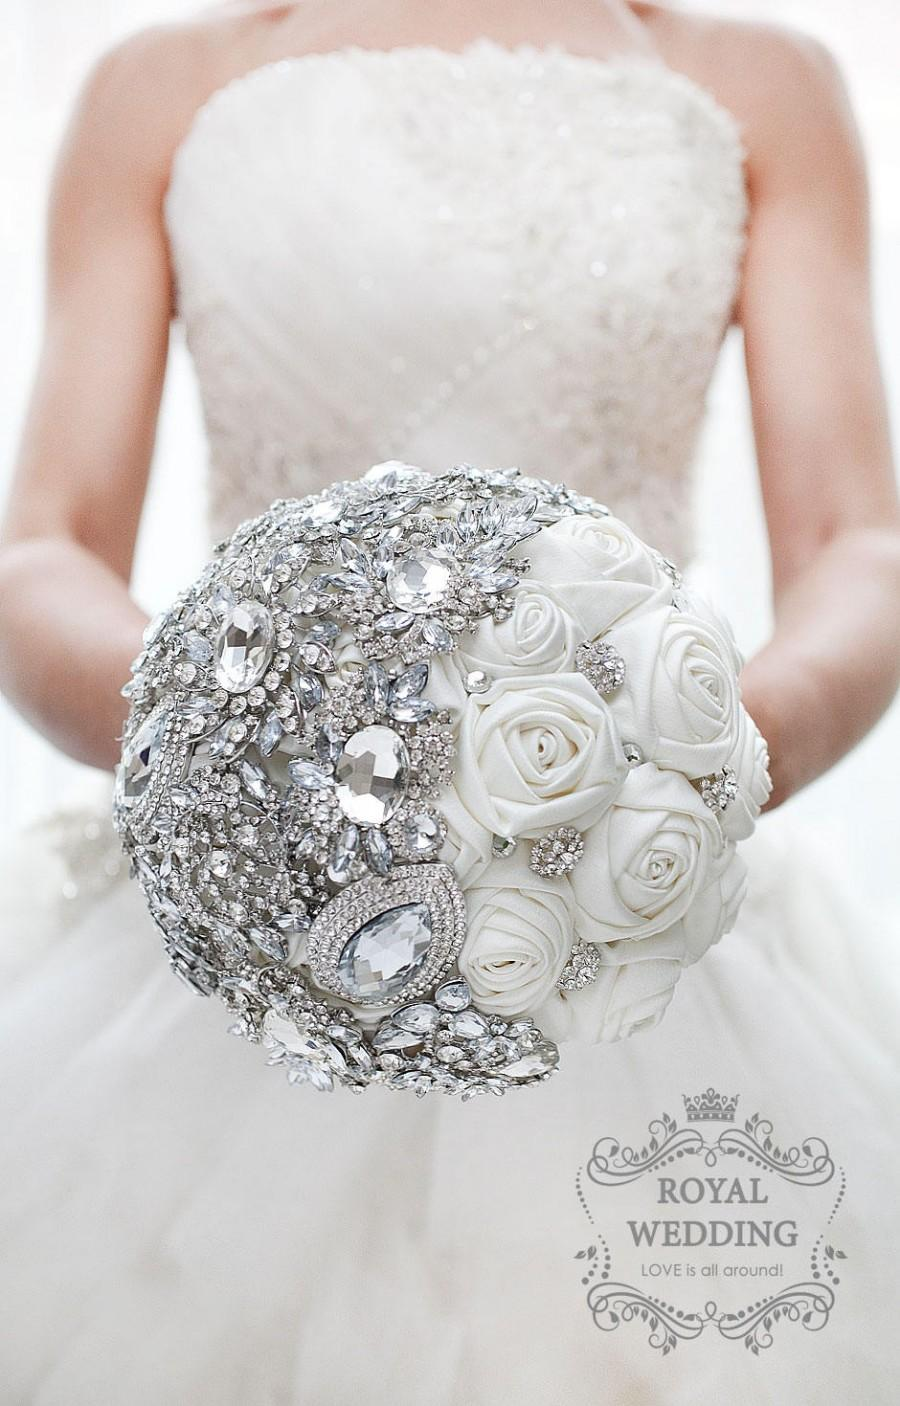 Mariage - White Fabric Wedding Brooch Bouquet Ivory Silver Bridal Bouquet Bridesmaids Gift Broach Jewelry Bouquet Ivory Brides Crystal Brooch Bouquet